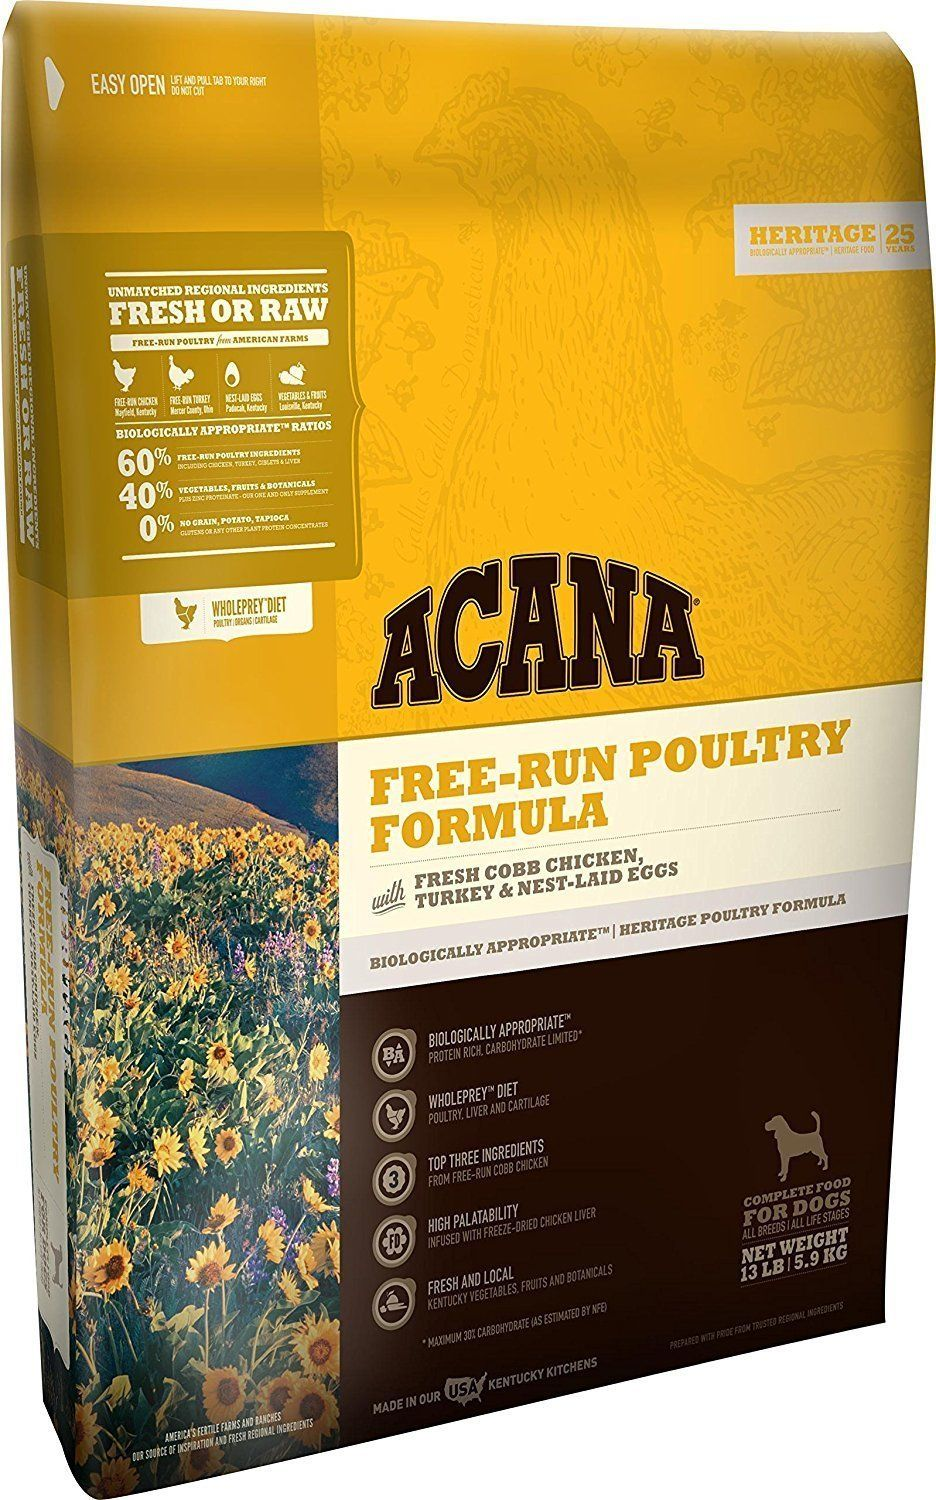 Acana Freerun Poultry Formula Dry Dog Food 13 Bag With Freerun